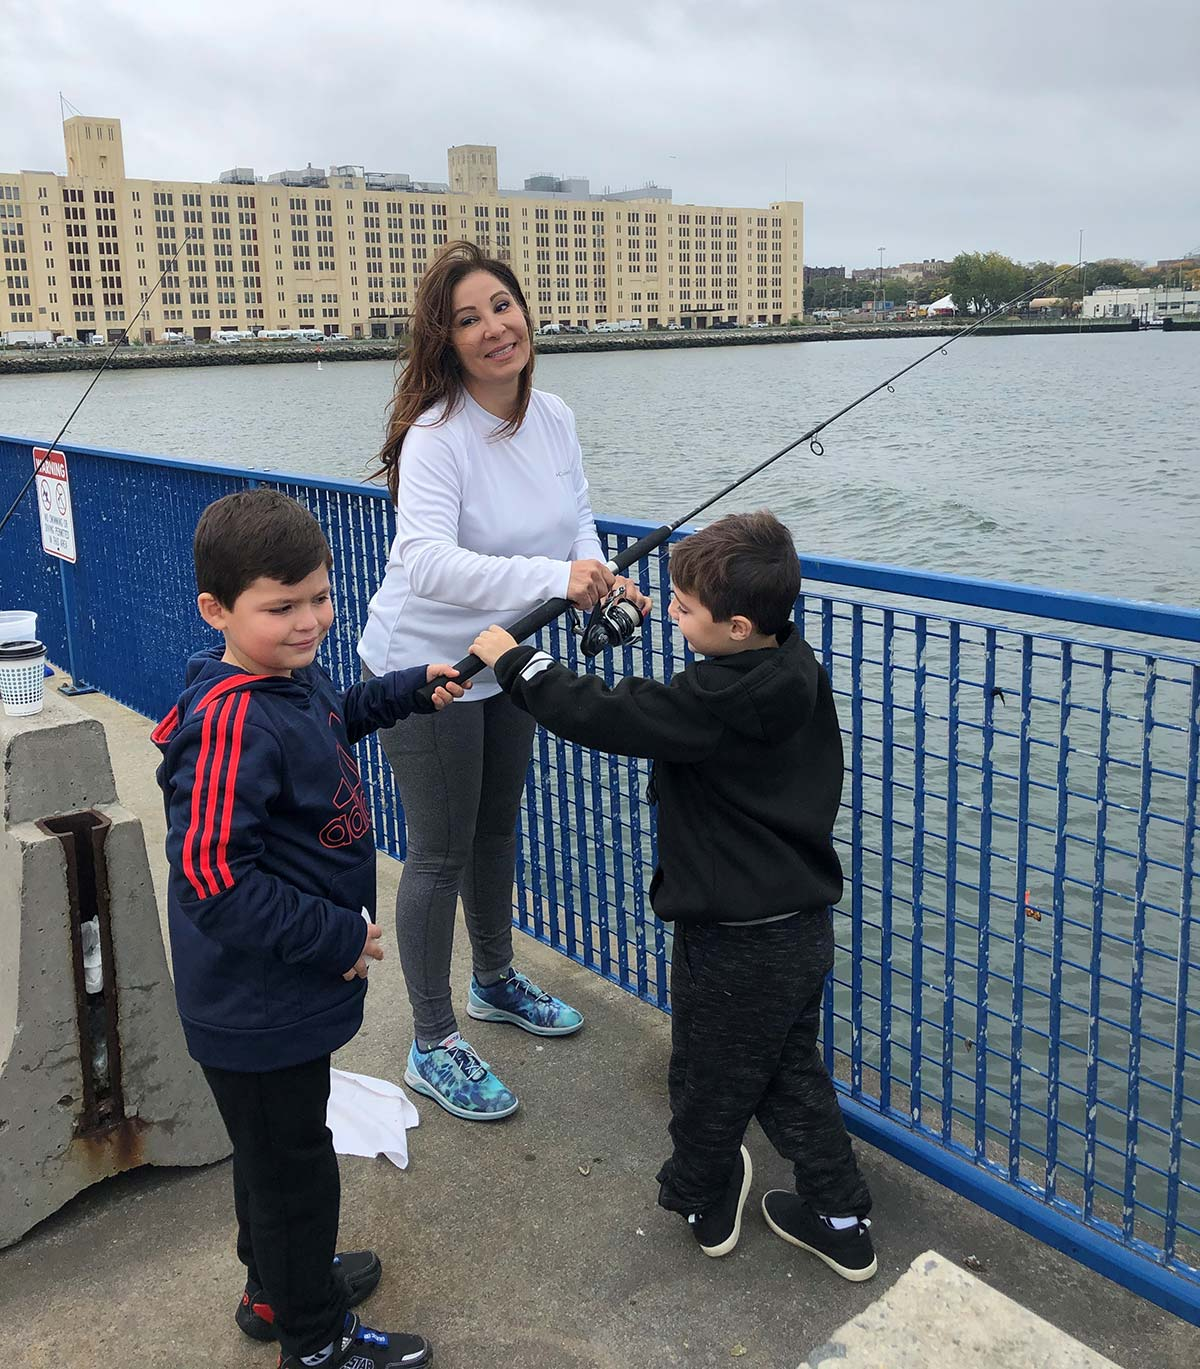 The author and her nephews enjoying a nice day on the water fishing.